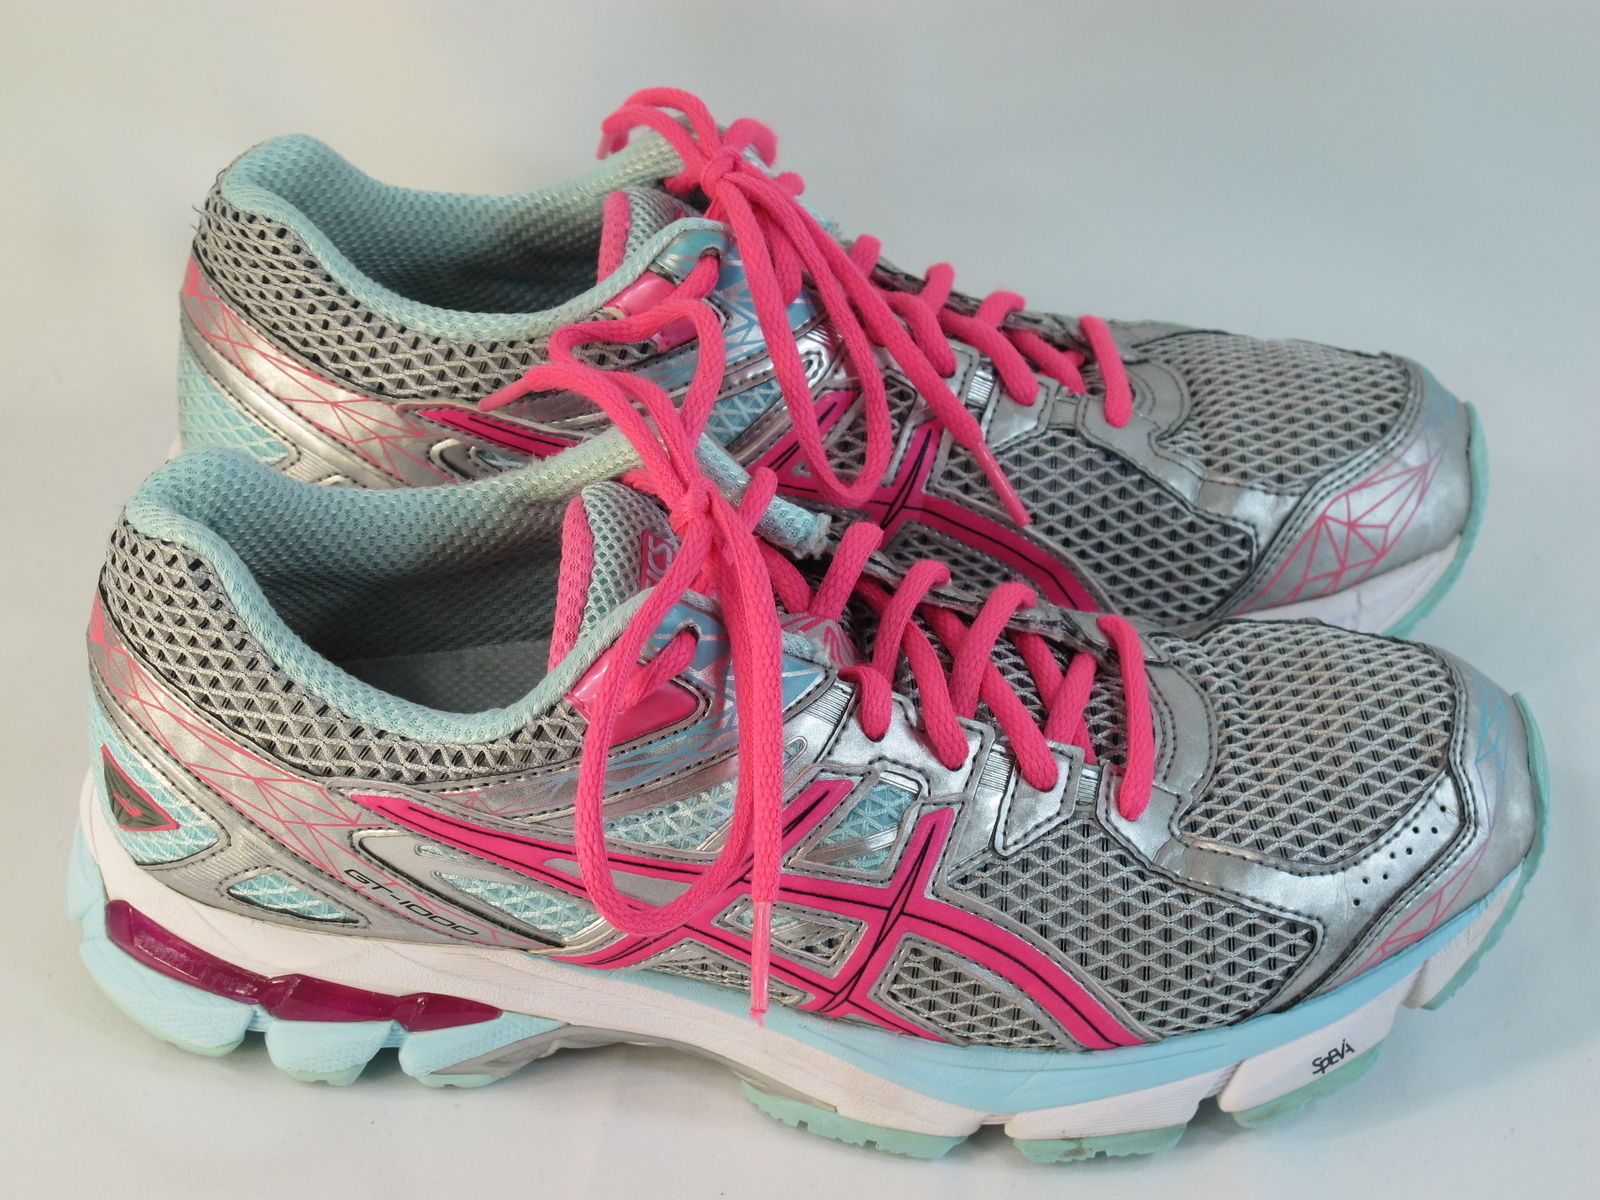 9c8457b73b2 ASICS GT-1000 3 Running Shoes Women's Size 9 and 46 similar items. S l1600